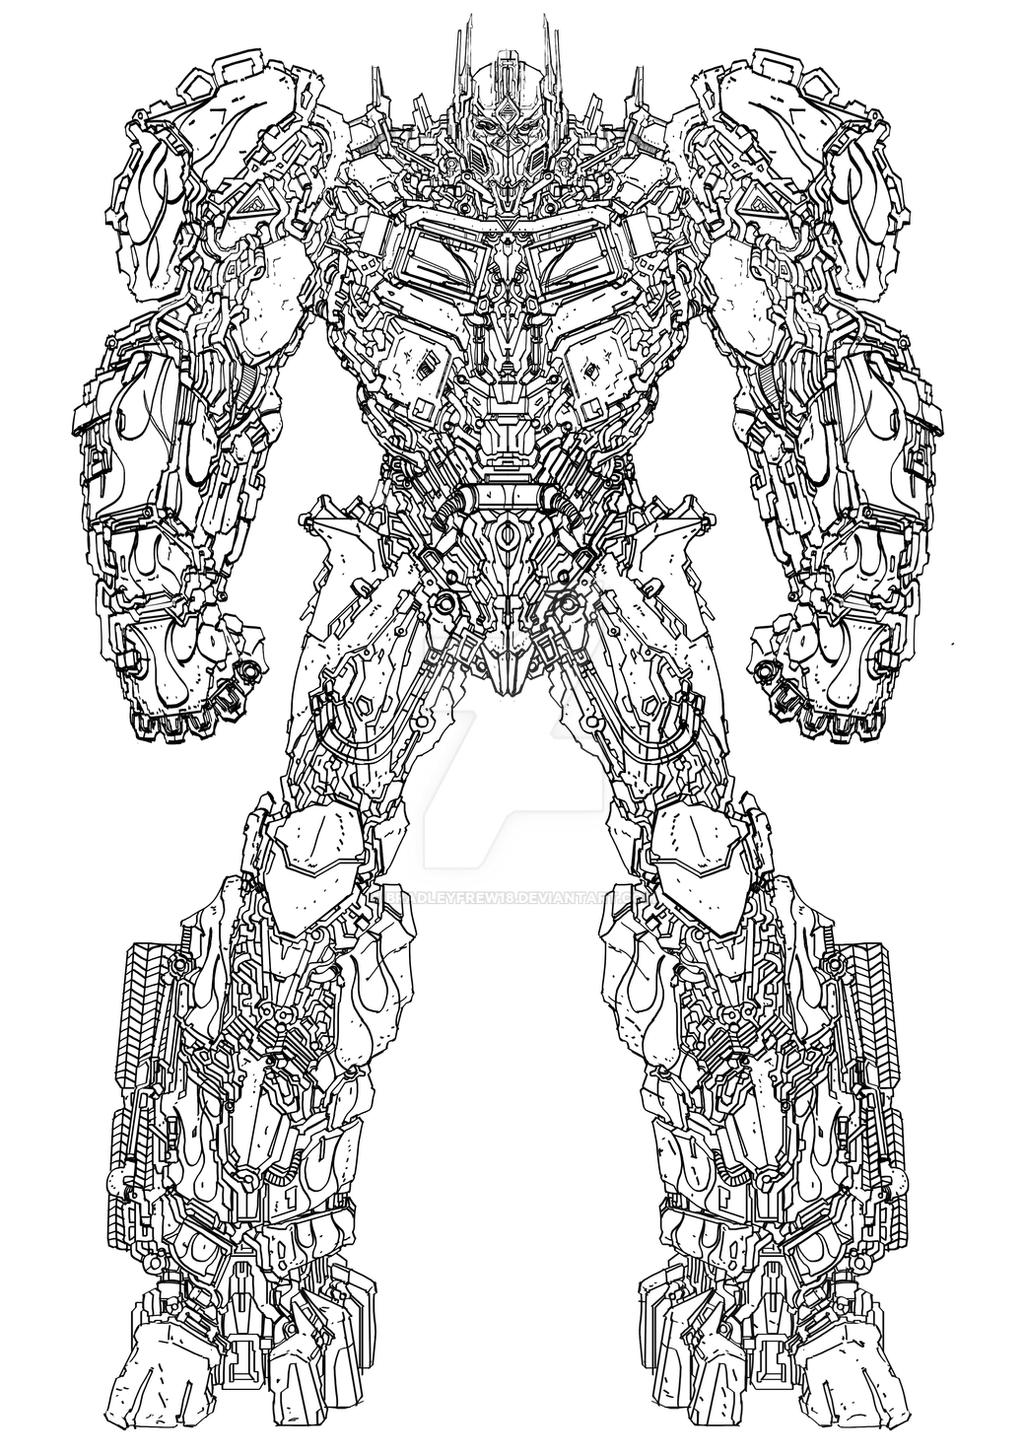 Transformers 5 Optimus Prime Concept Art Outline By